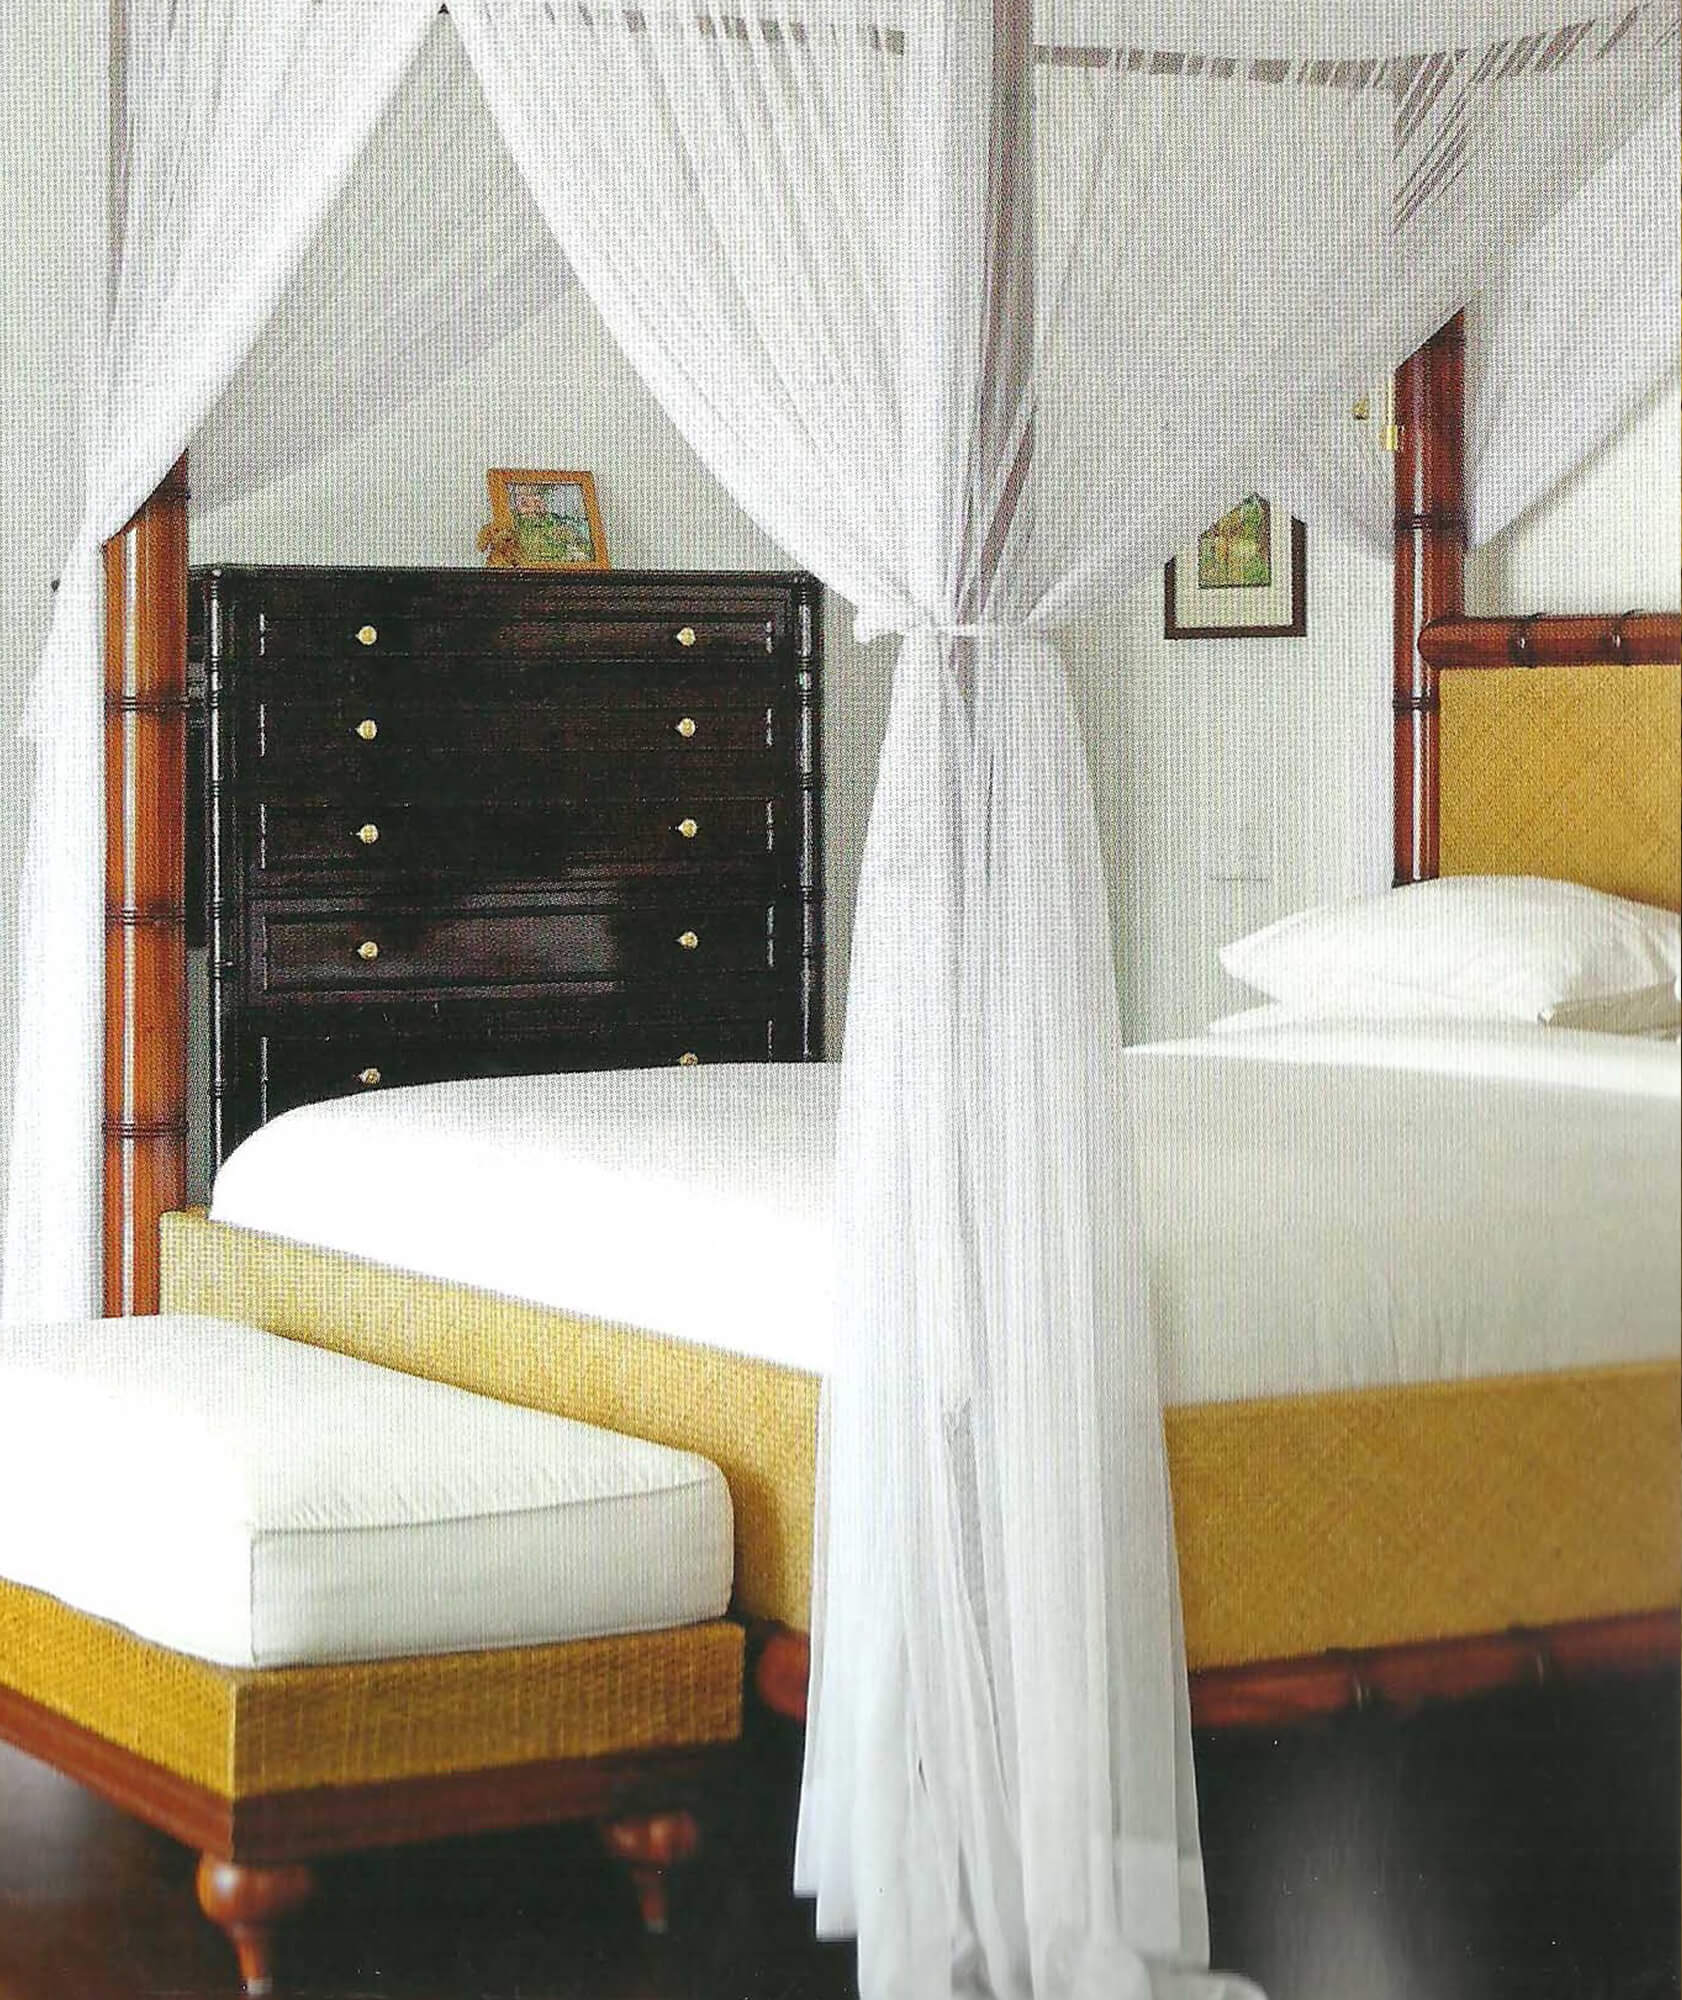 TRADE WINDS BED RIGHTHAND 5 - STUART MEMBERY HOME COLLECTION